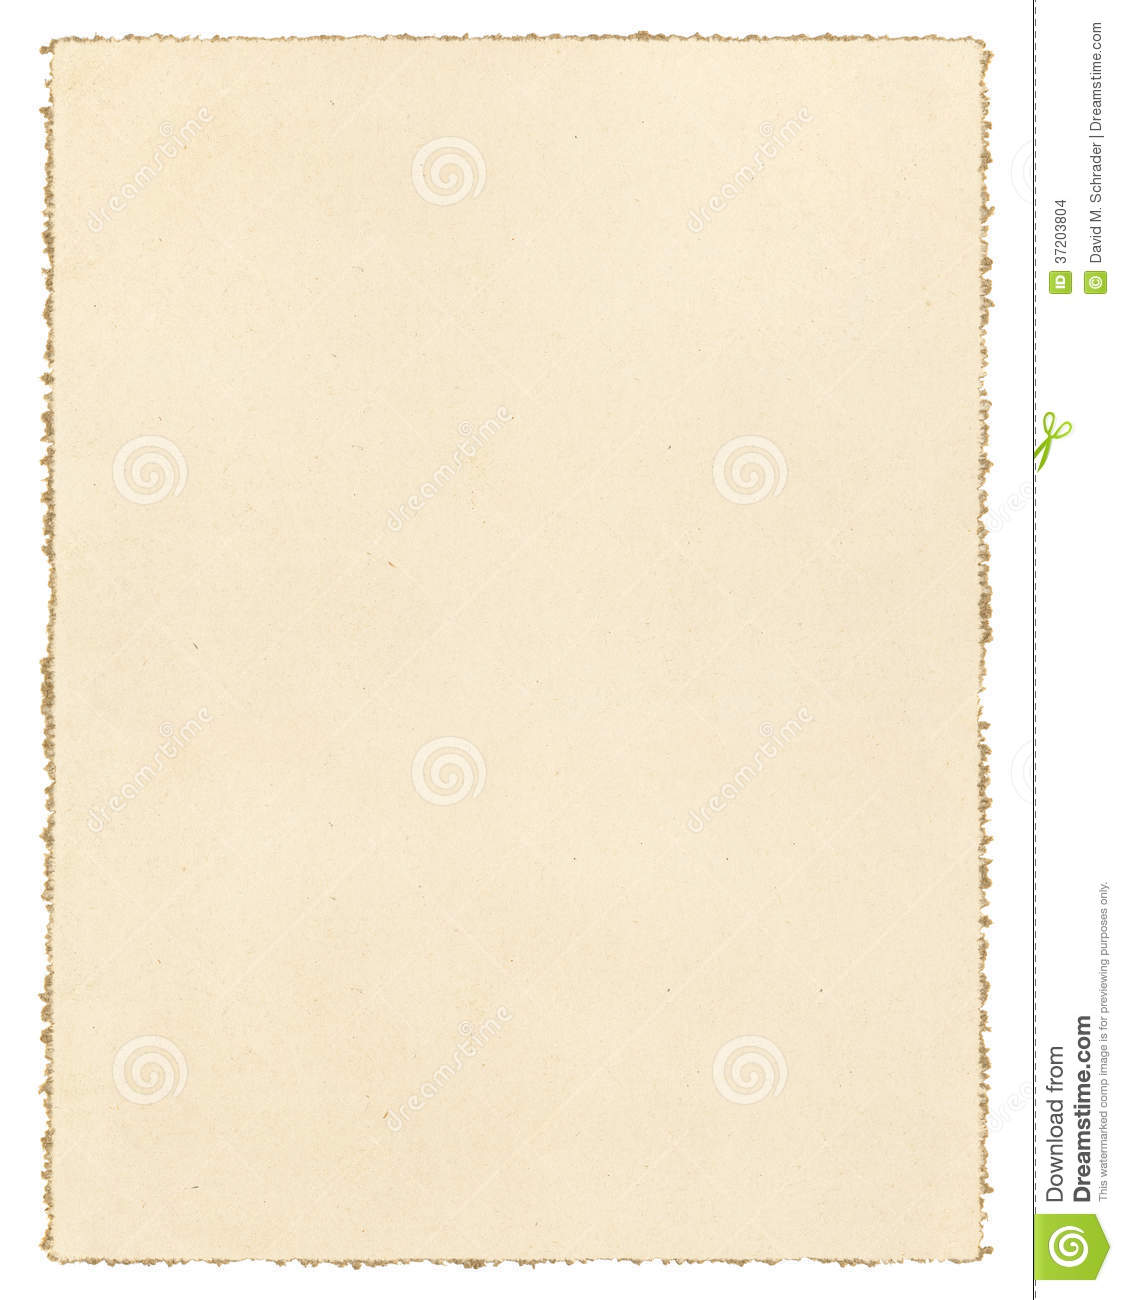 deckle edge paper For all those with a love and understanding of paper as a medium in its own right.